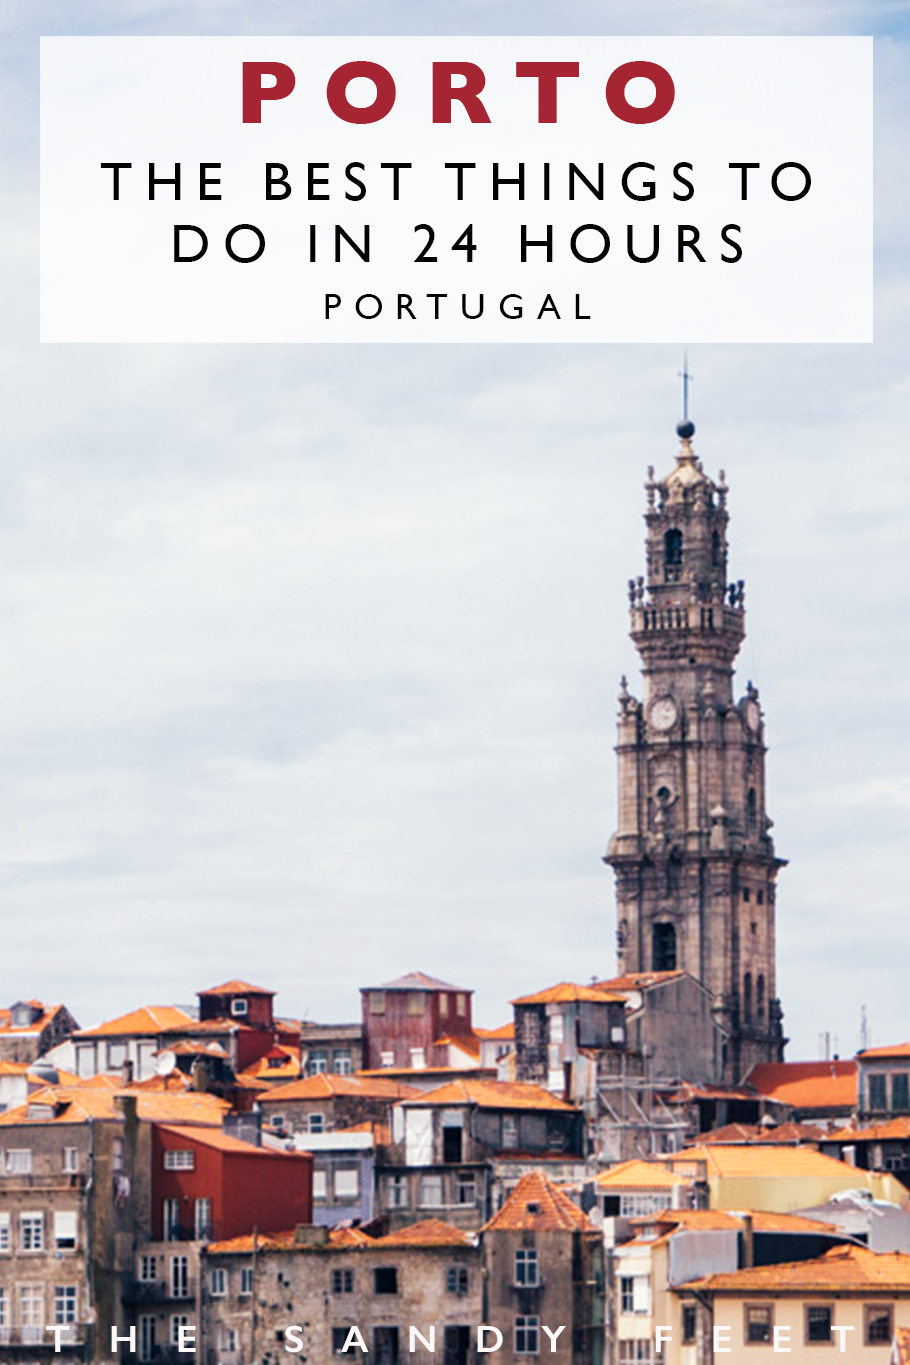 How To Have The Perfect Day In Porto   Portugal